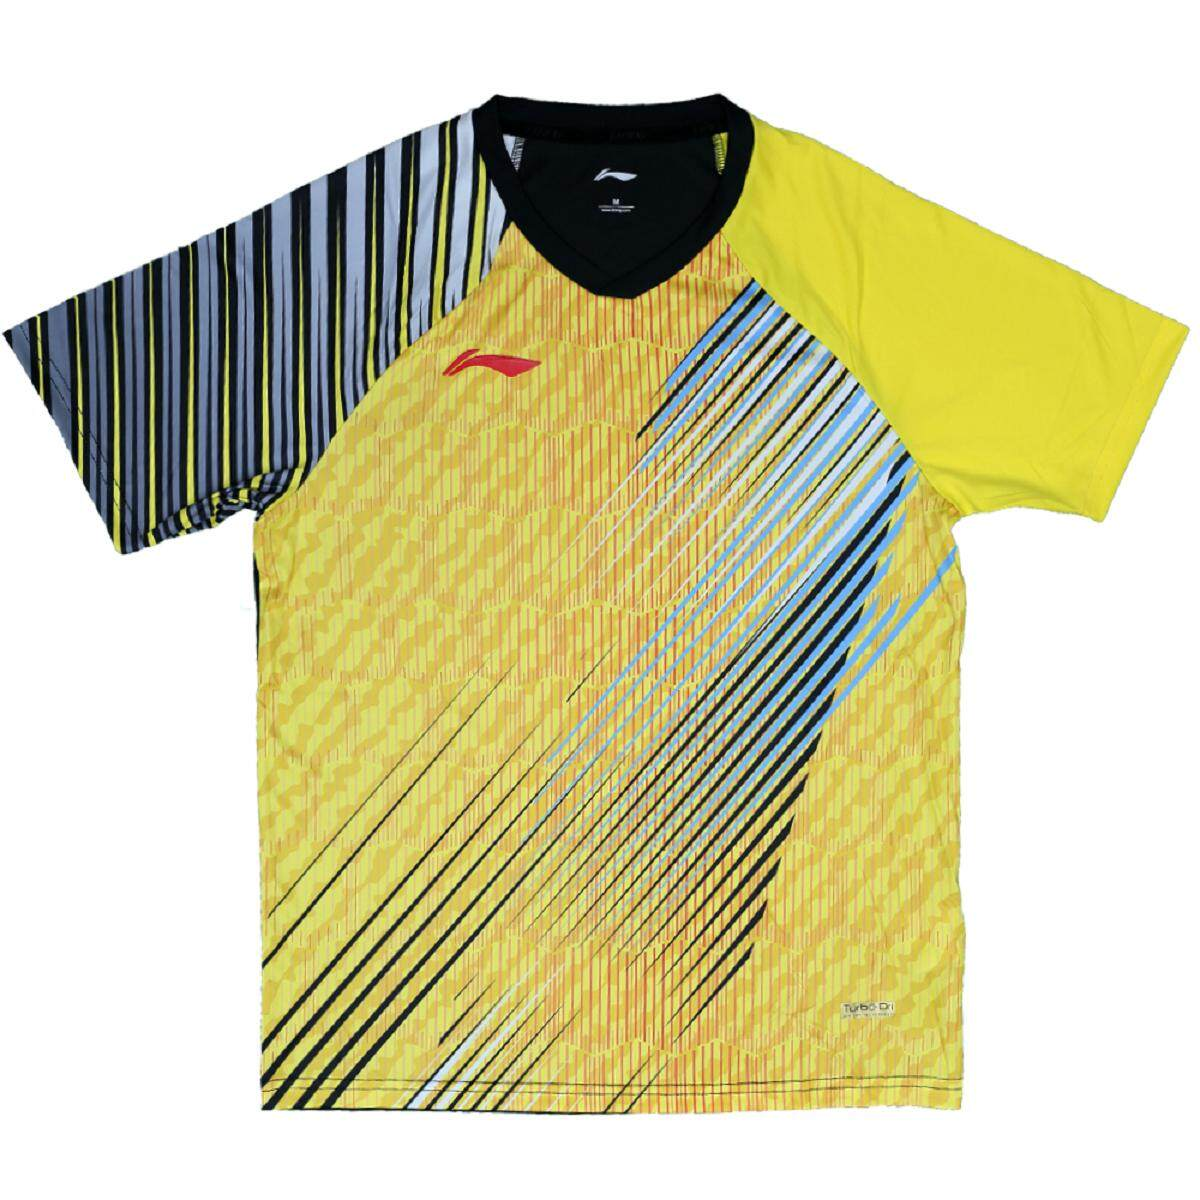 Li-Ning Men's V-Neck T-shirt